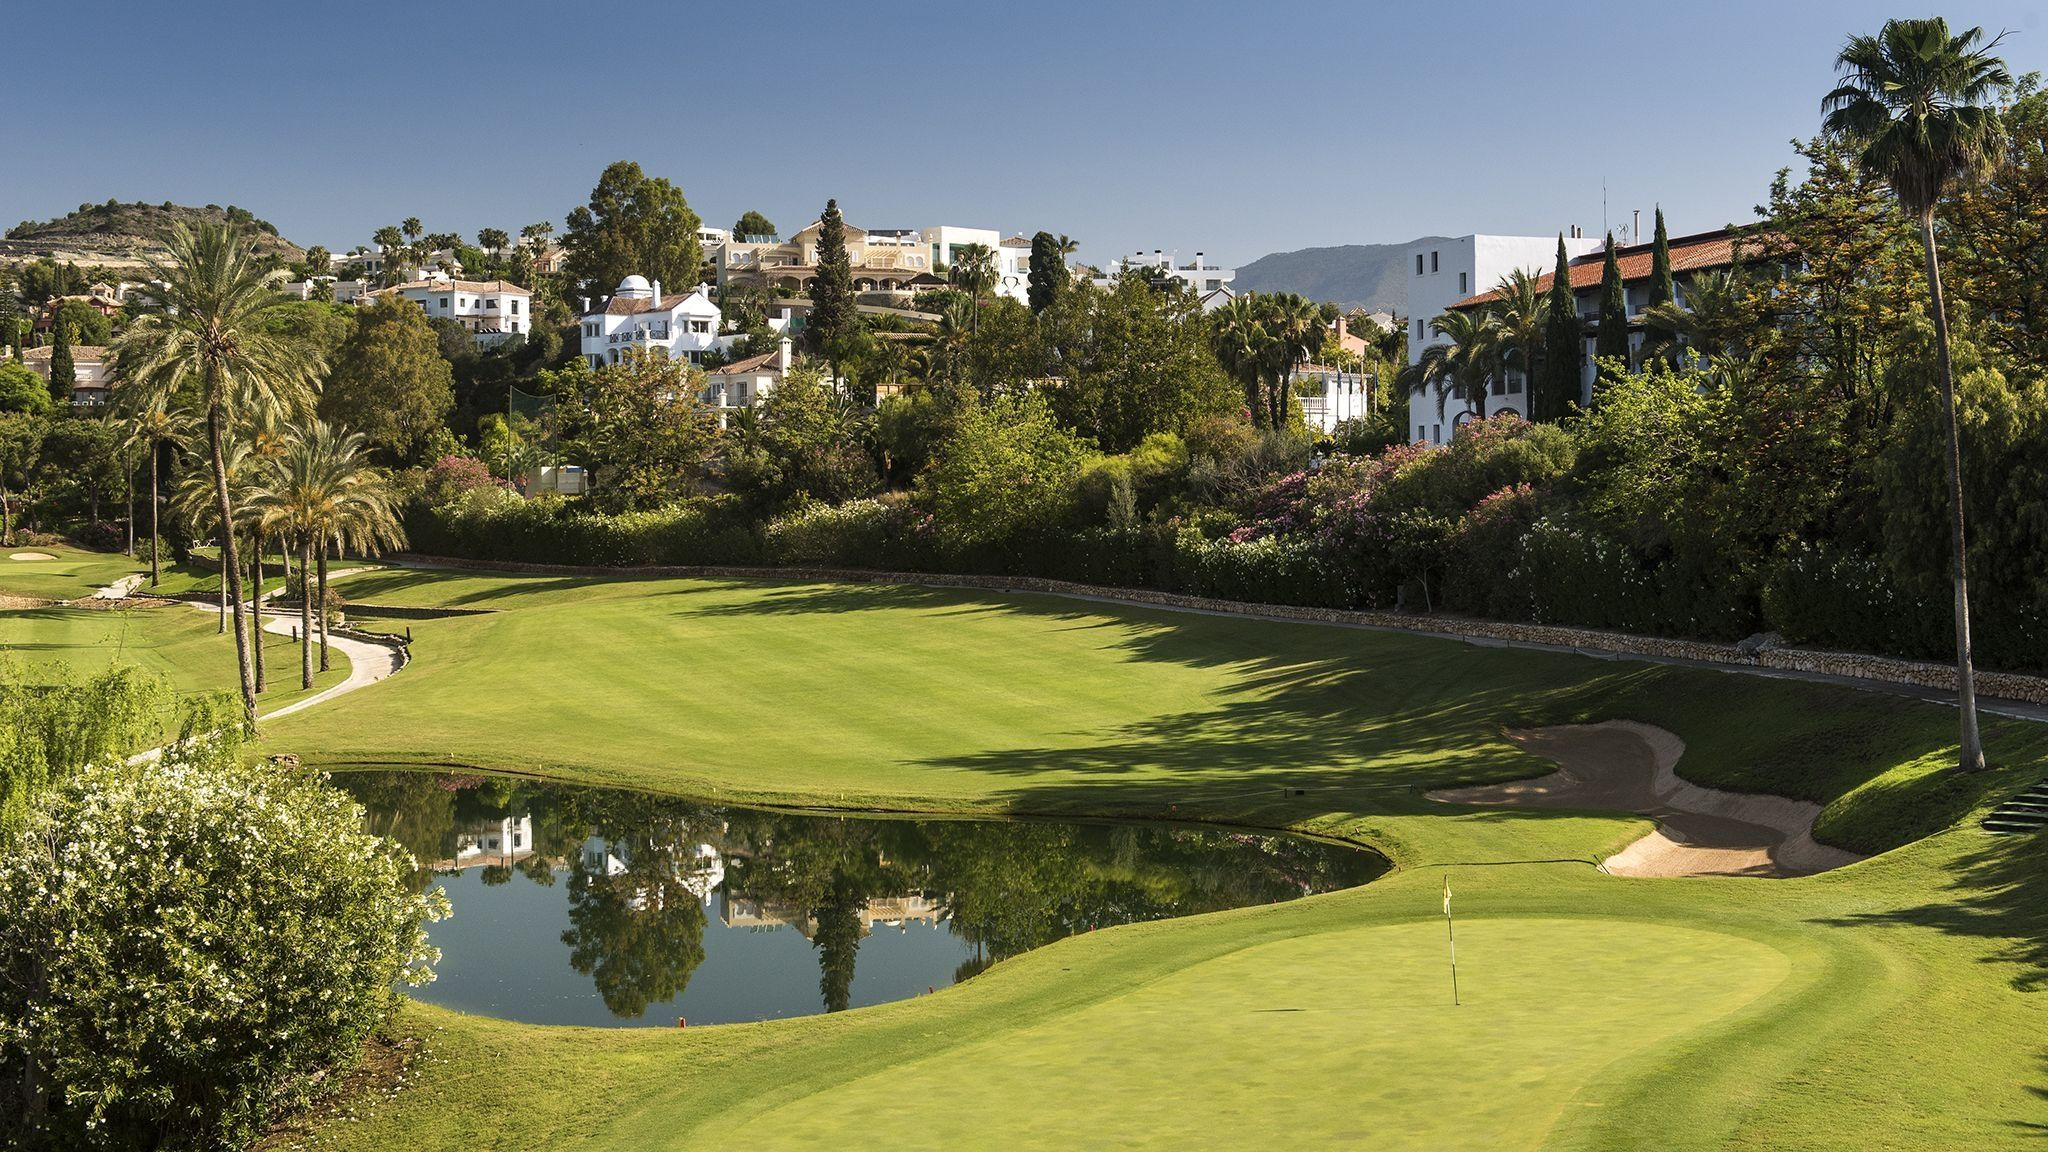 La Quinta Golf & Country Club Marbella